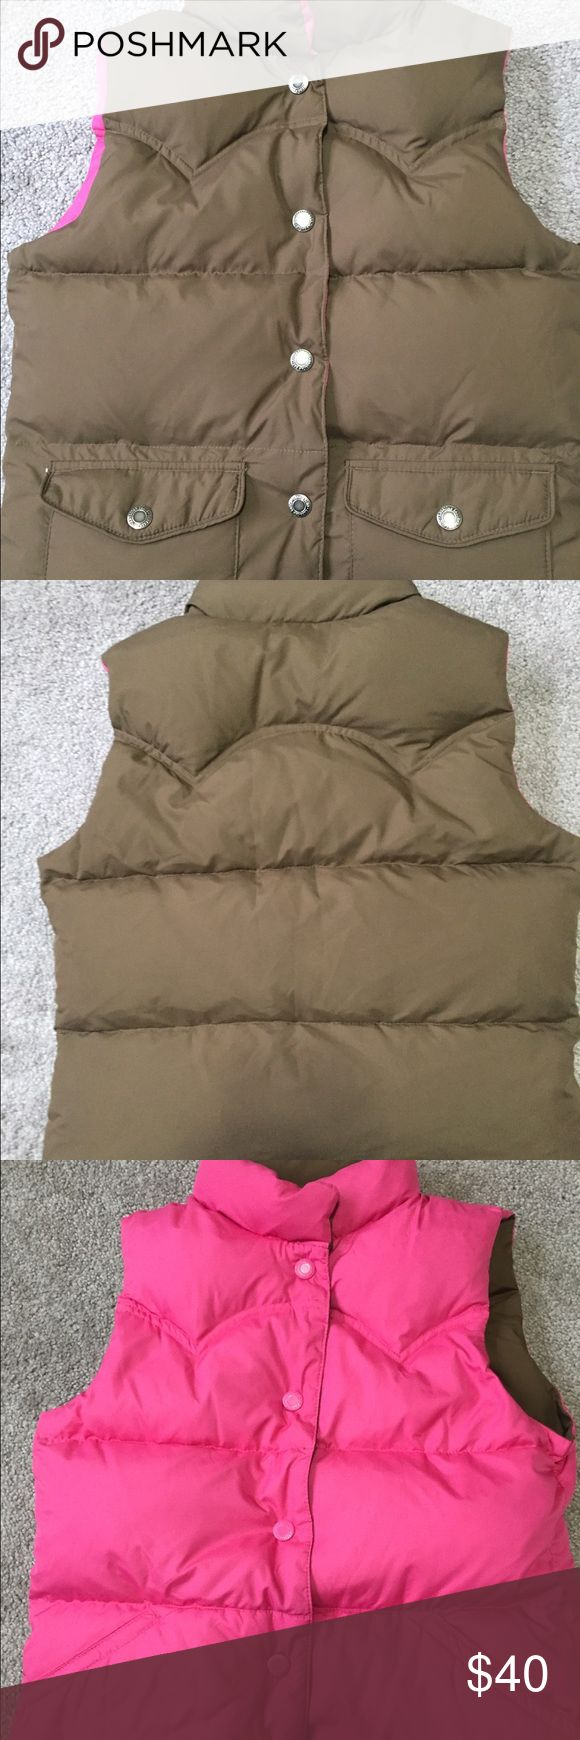 American Eagle Outfitters reversible puffy vest Two vests in one with Snap buttons on both sides Jackets & Coats Vests